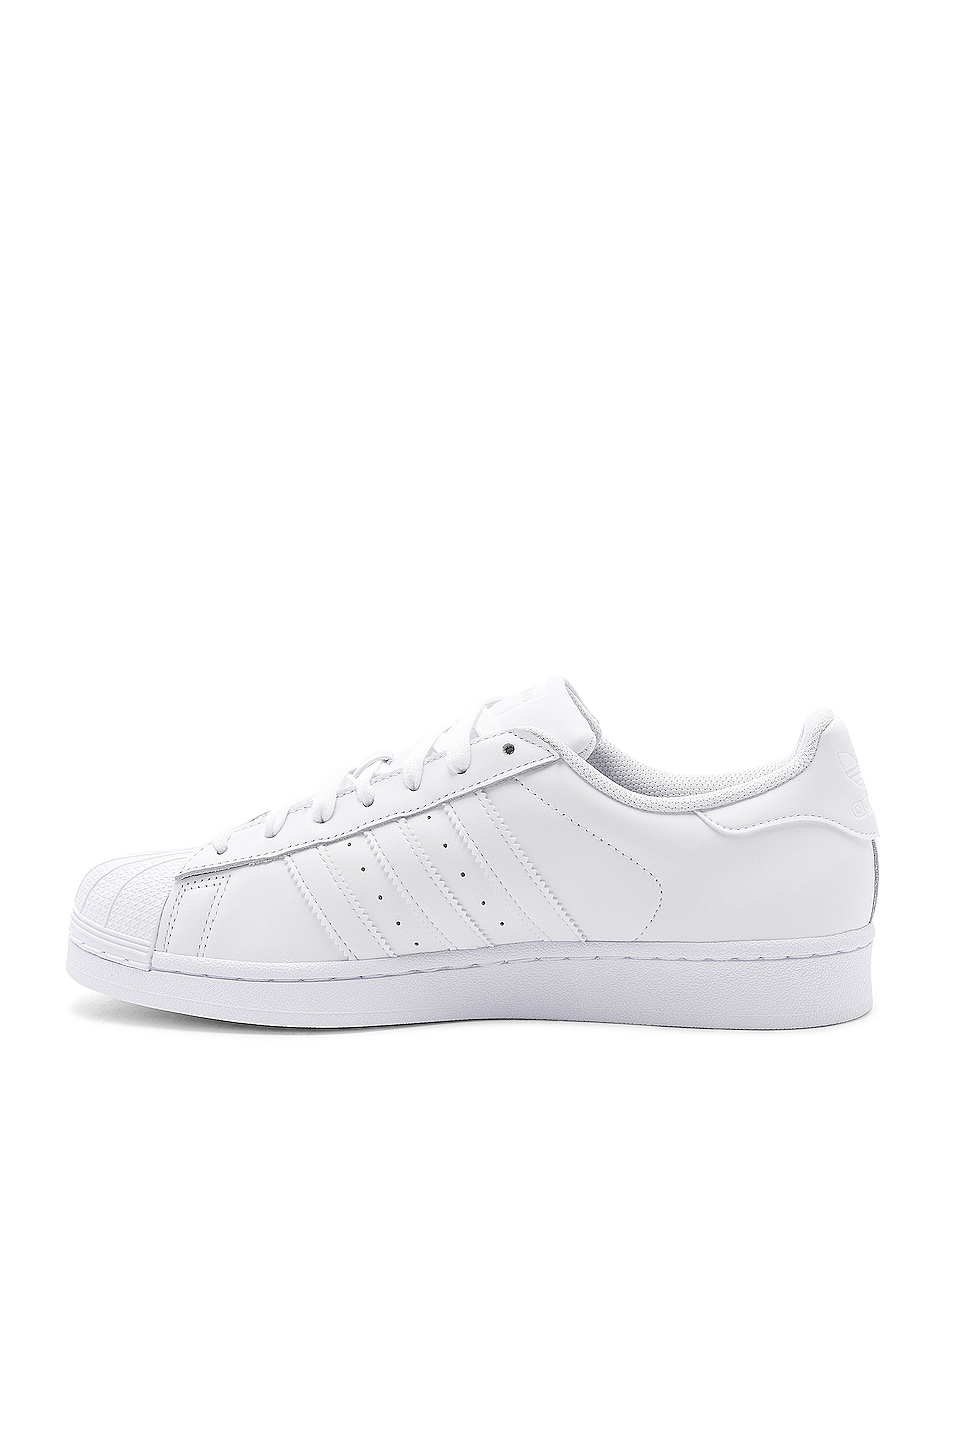 Image 5 of adidas Originals Superstar Foundation in White & White & White